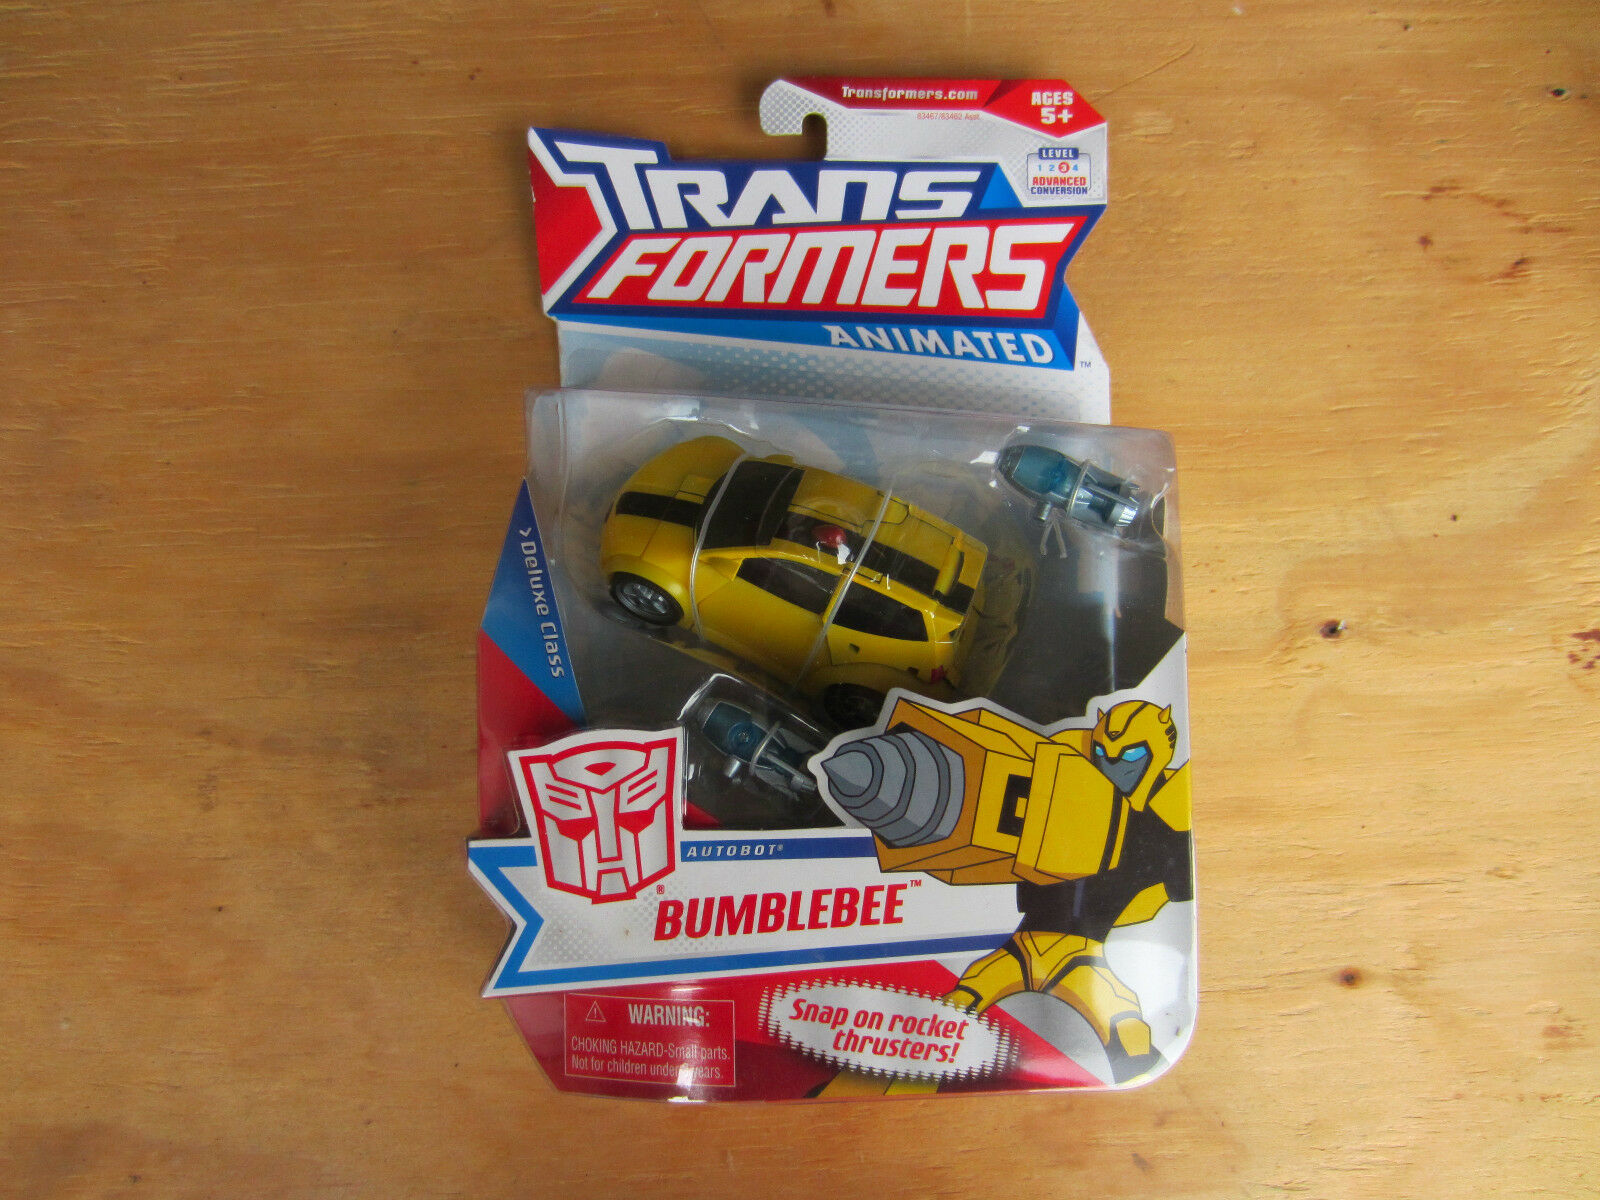 Transformers Animated Autobot Bumblebee Deluxe Class Action Figure 2008 new MISB